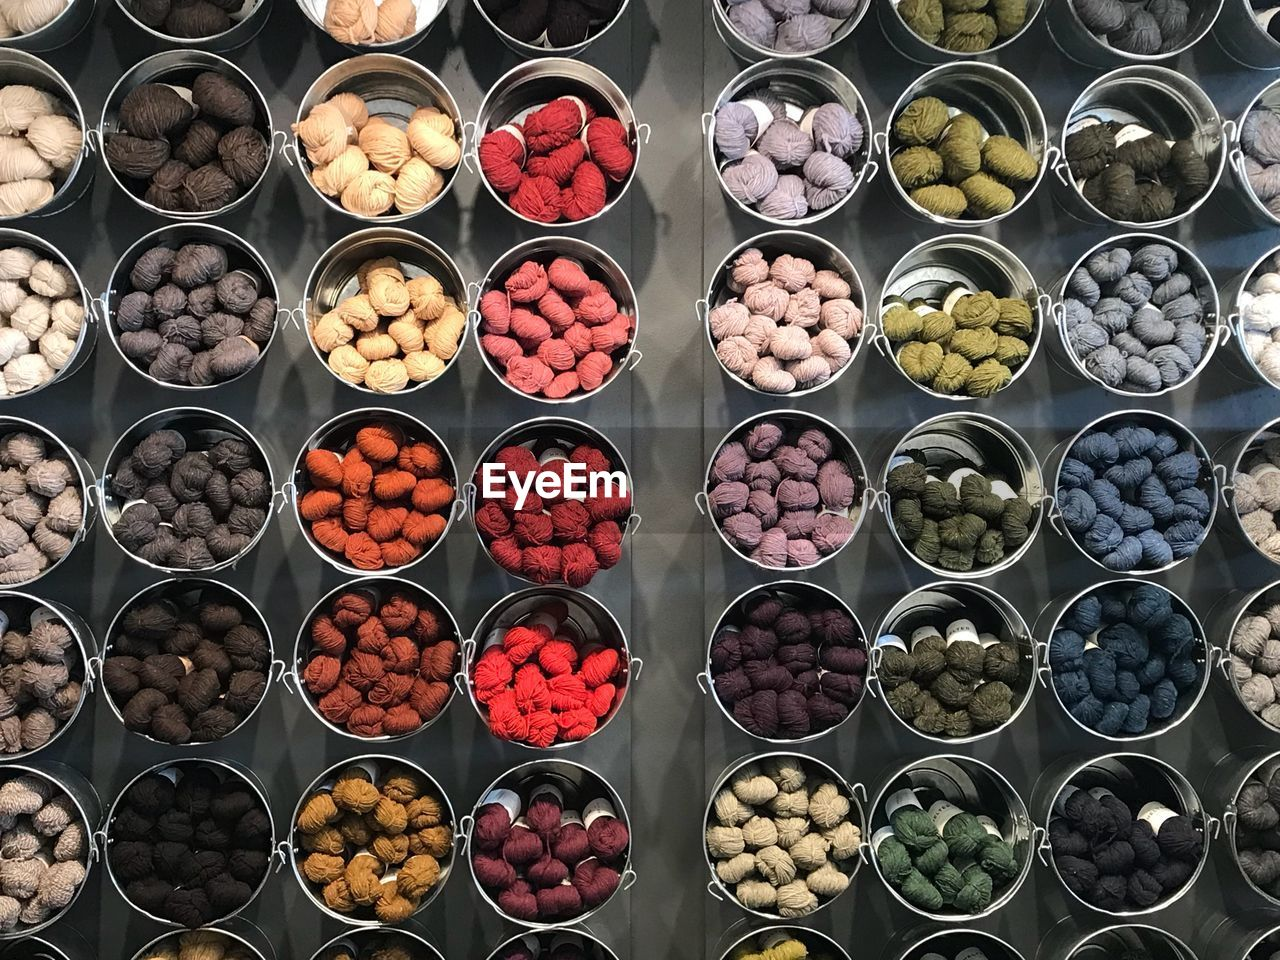 High angle view of colorful wools in buckets for sale in market